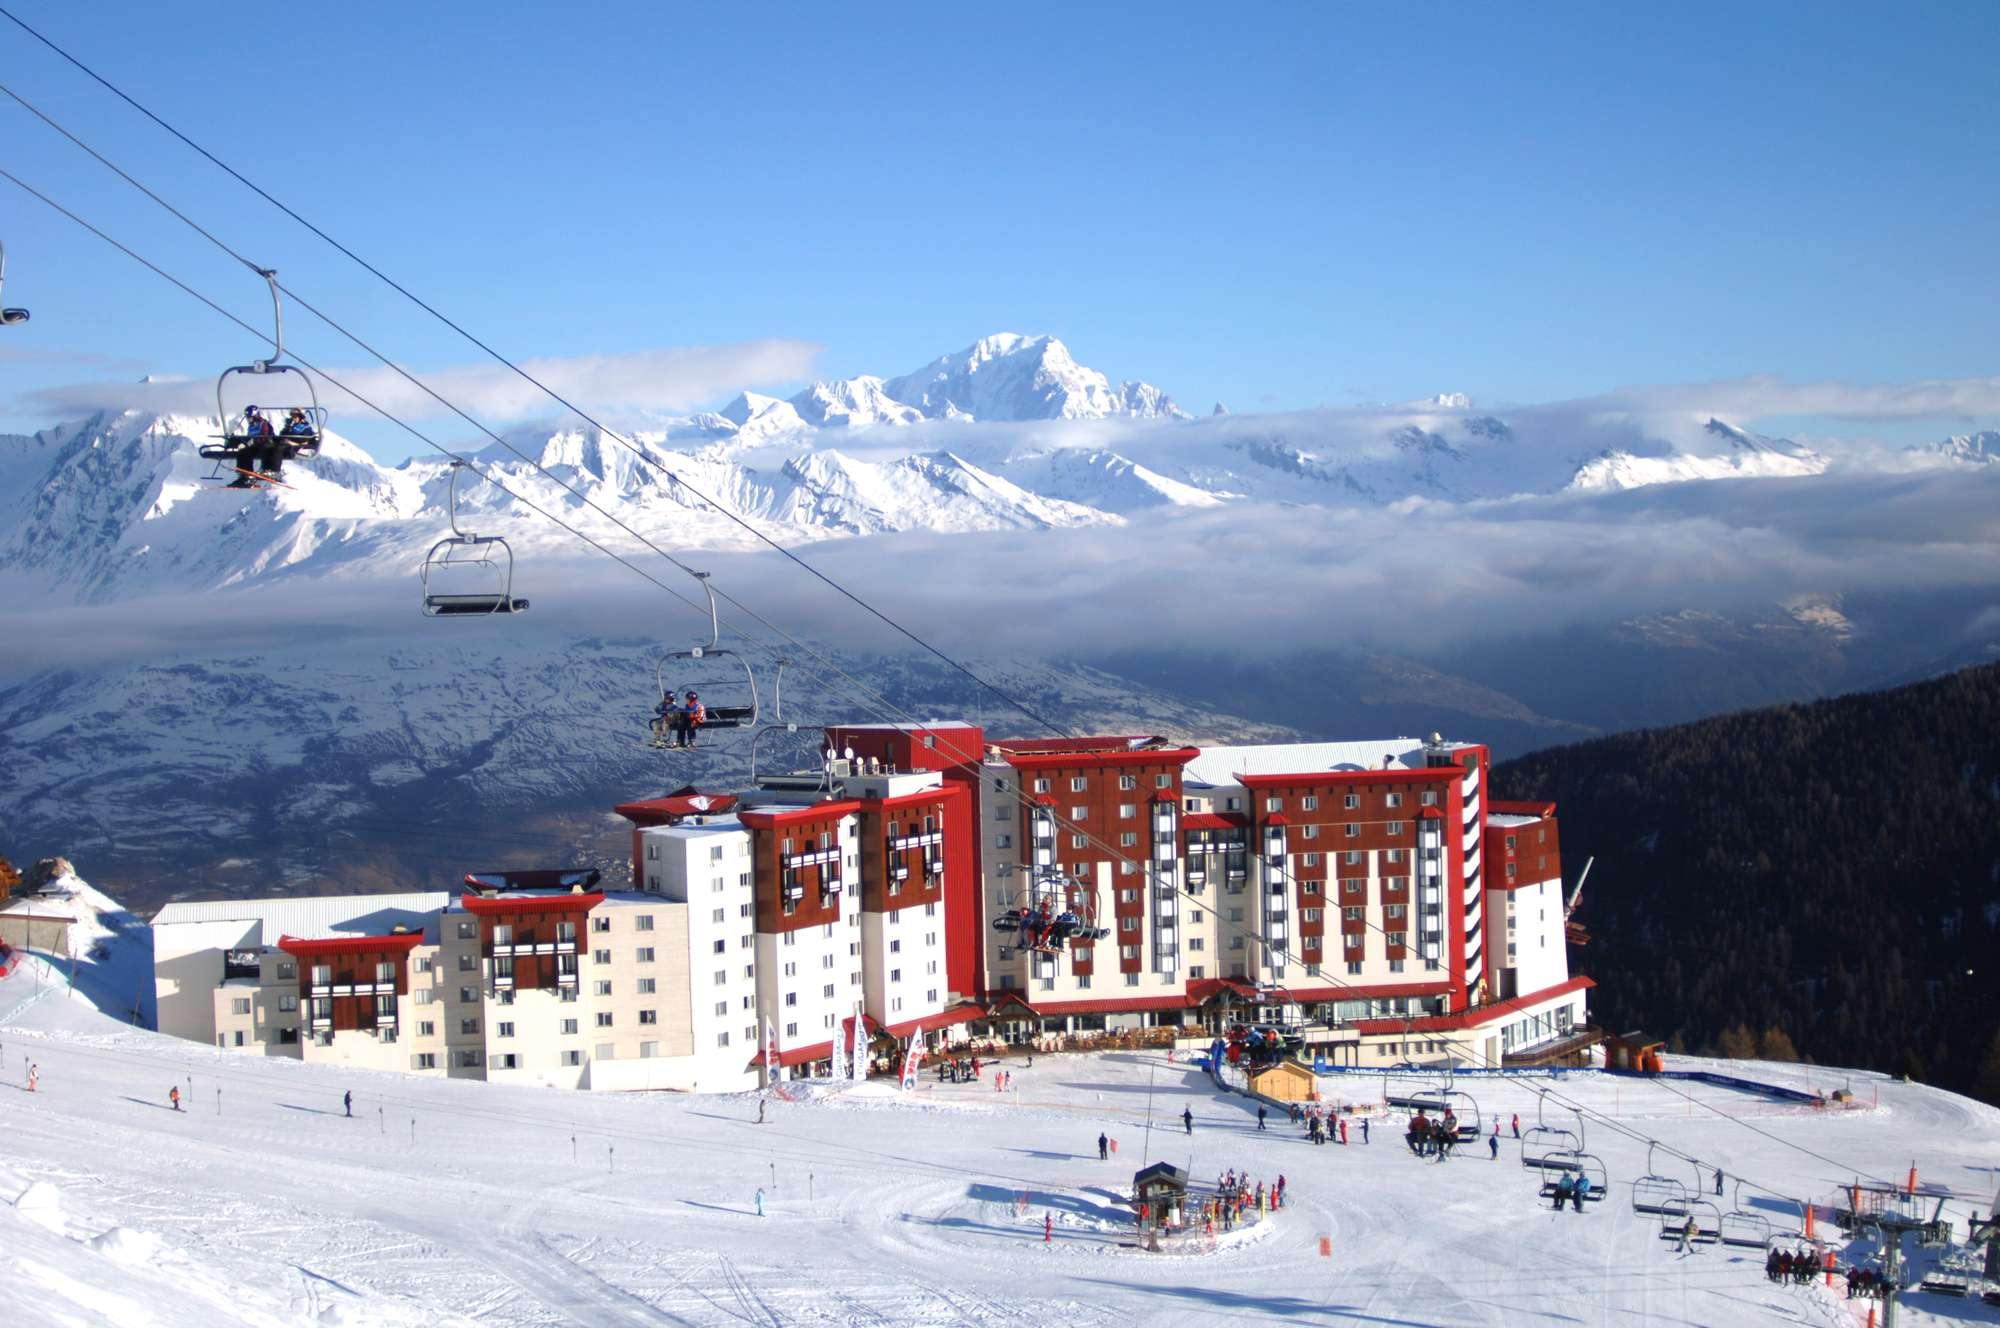 Https  ns.clubmed.com icp 1 media 01.villages 1.3montagne 1 plagne 2100 44 photos placa107086